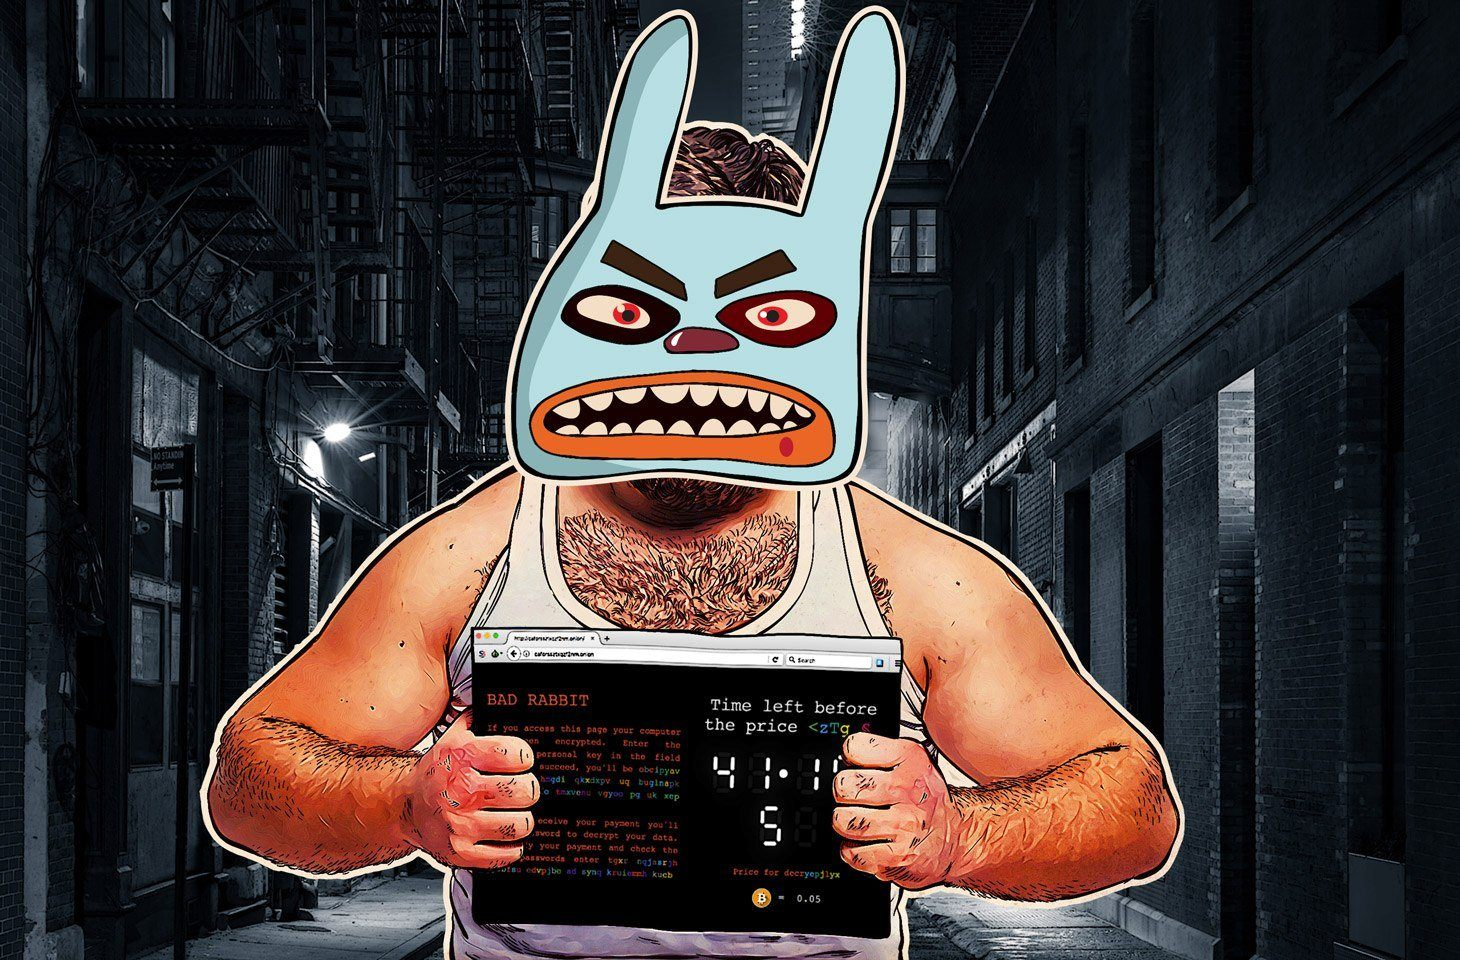 Bad Rabbit: A new ransomware epidemic is on the rise